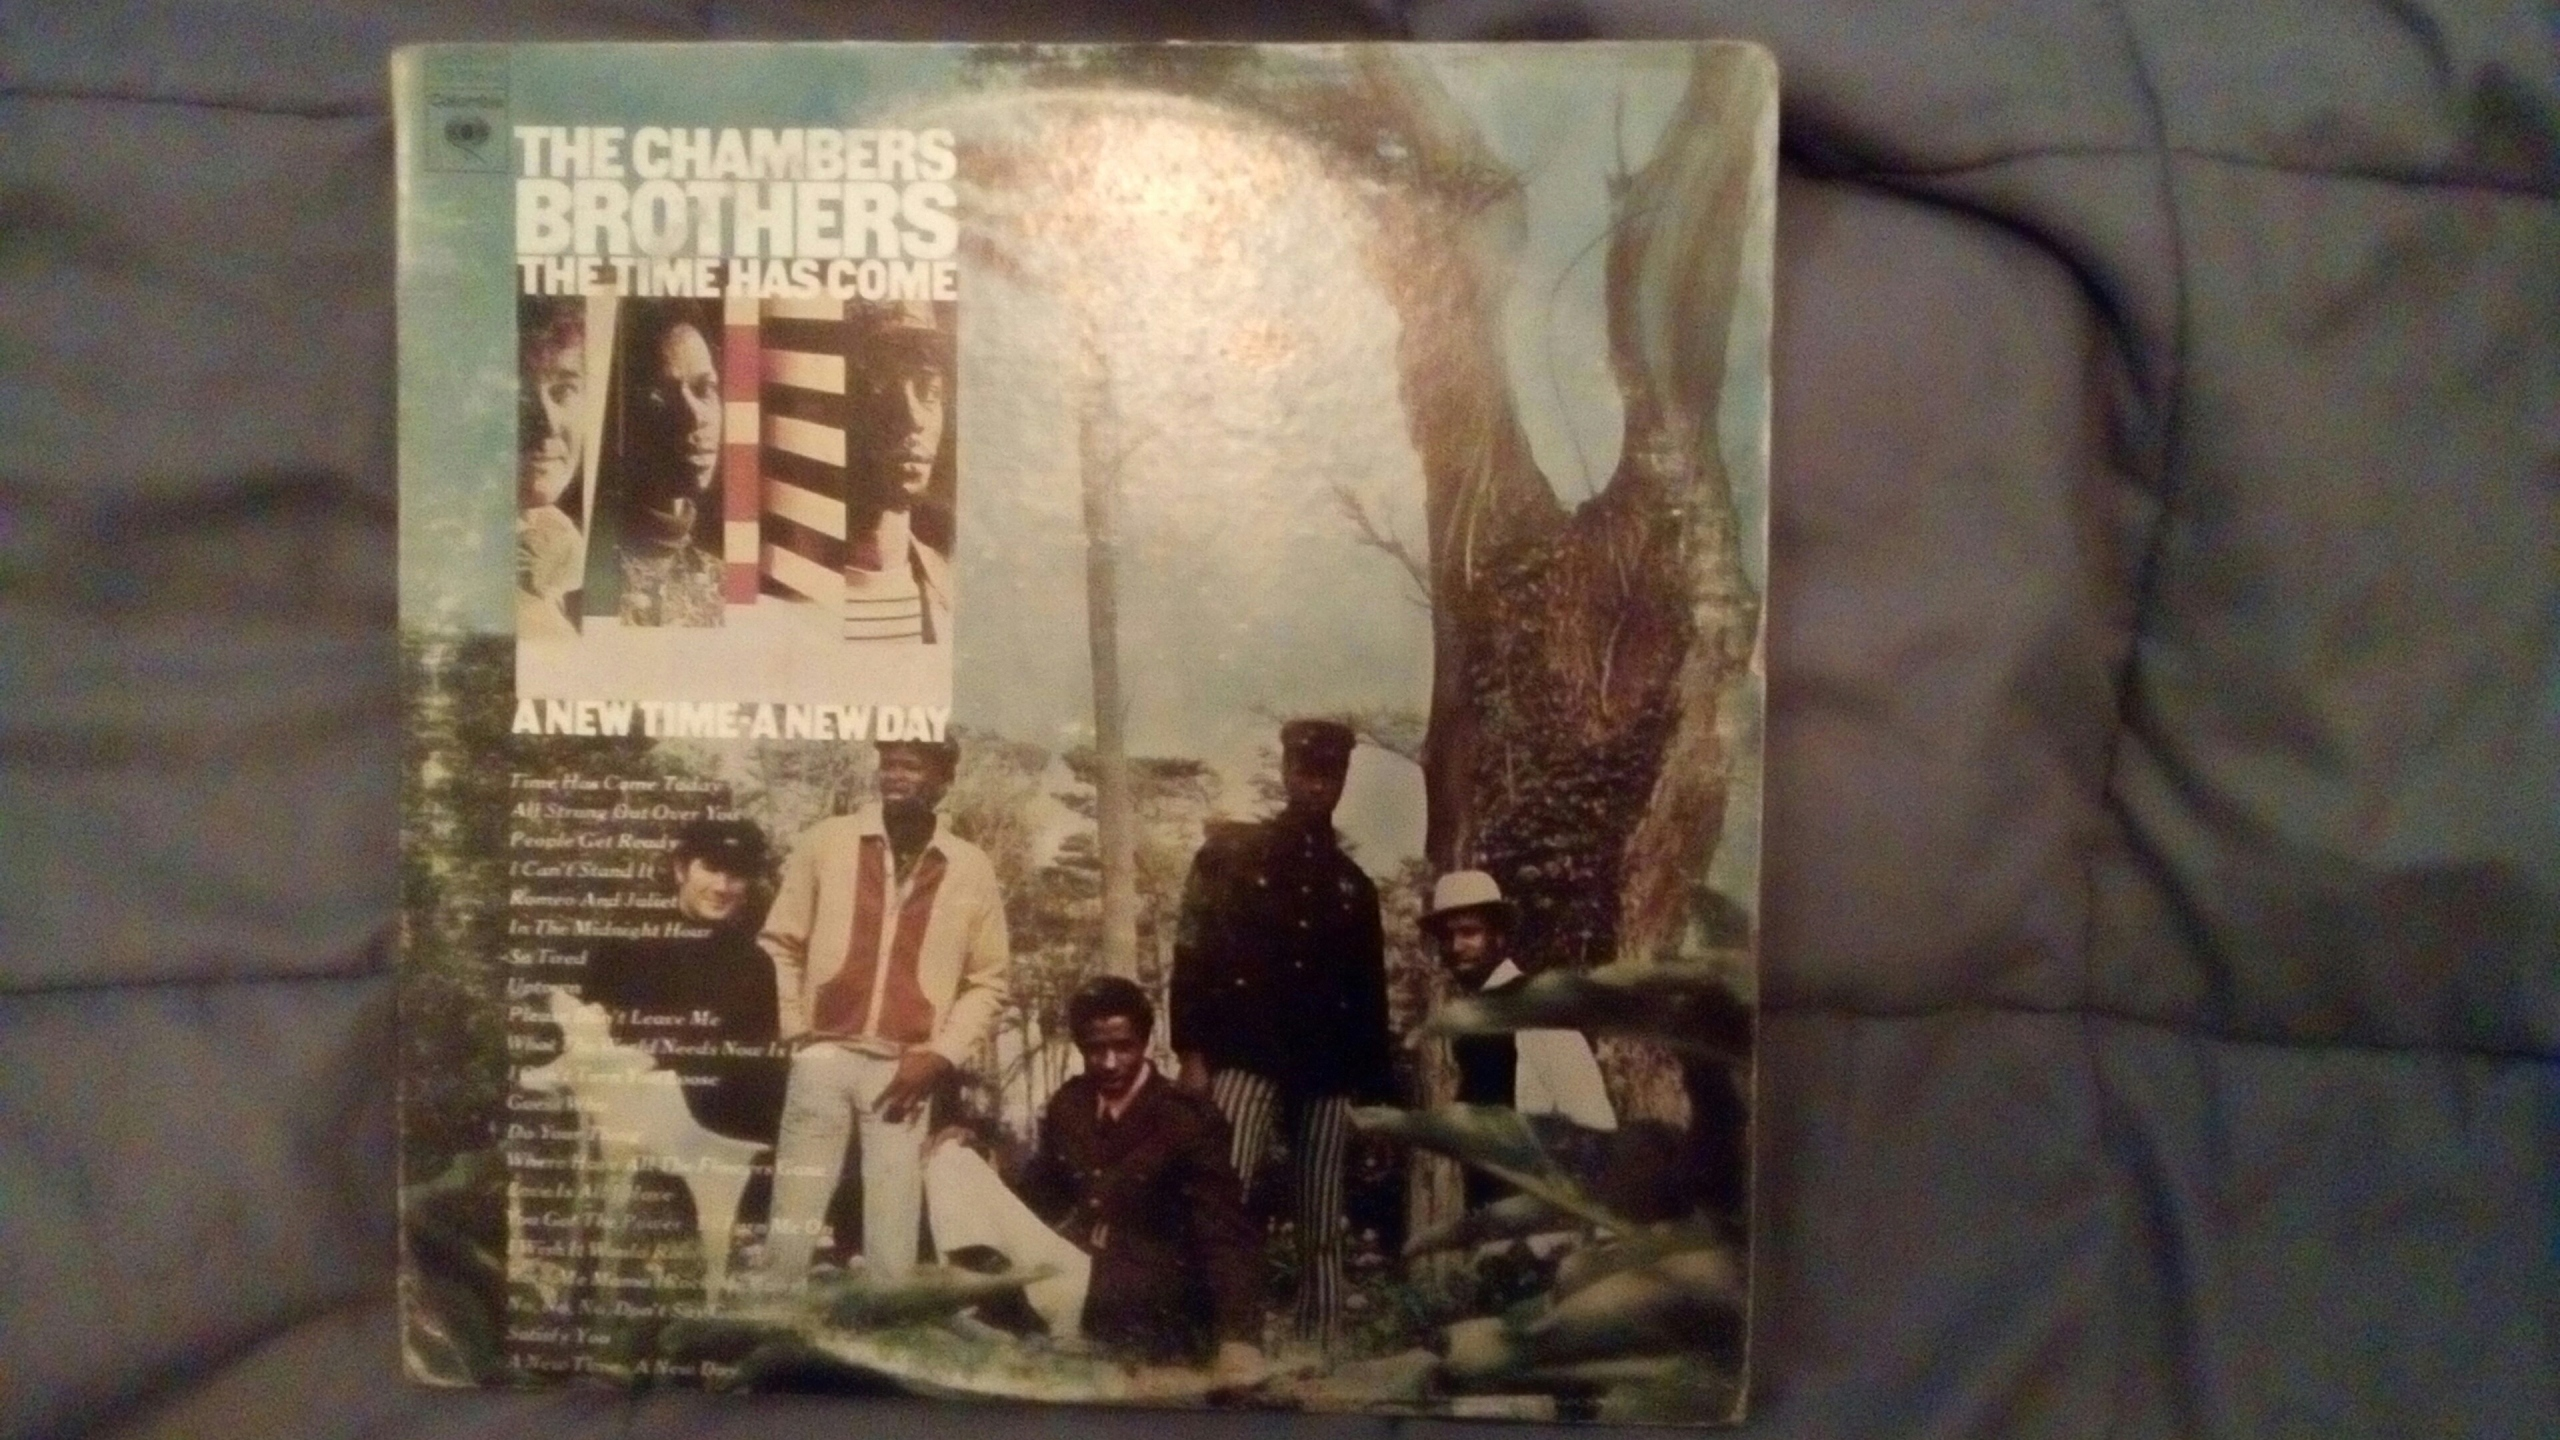 The chambers brothers 2lp